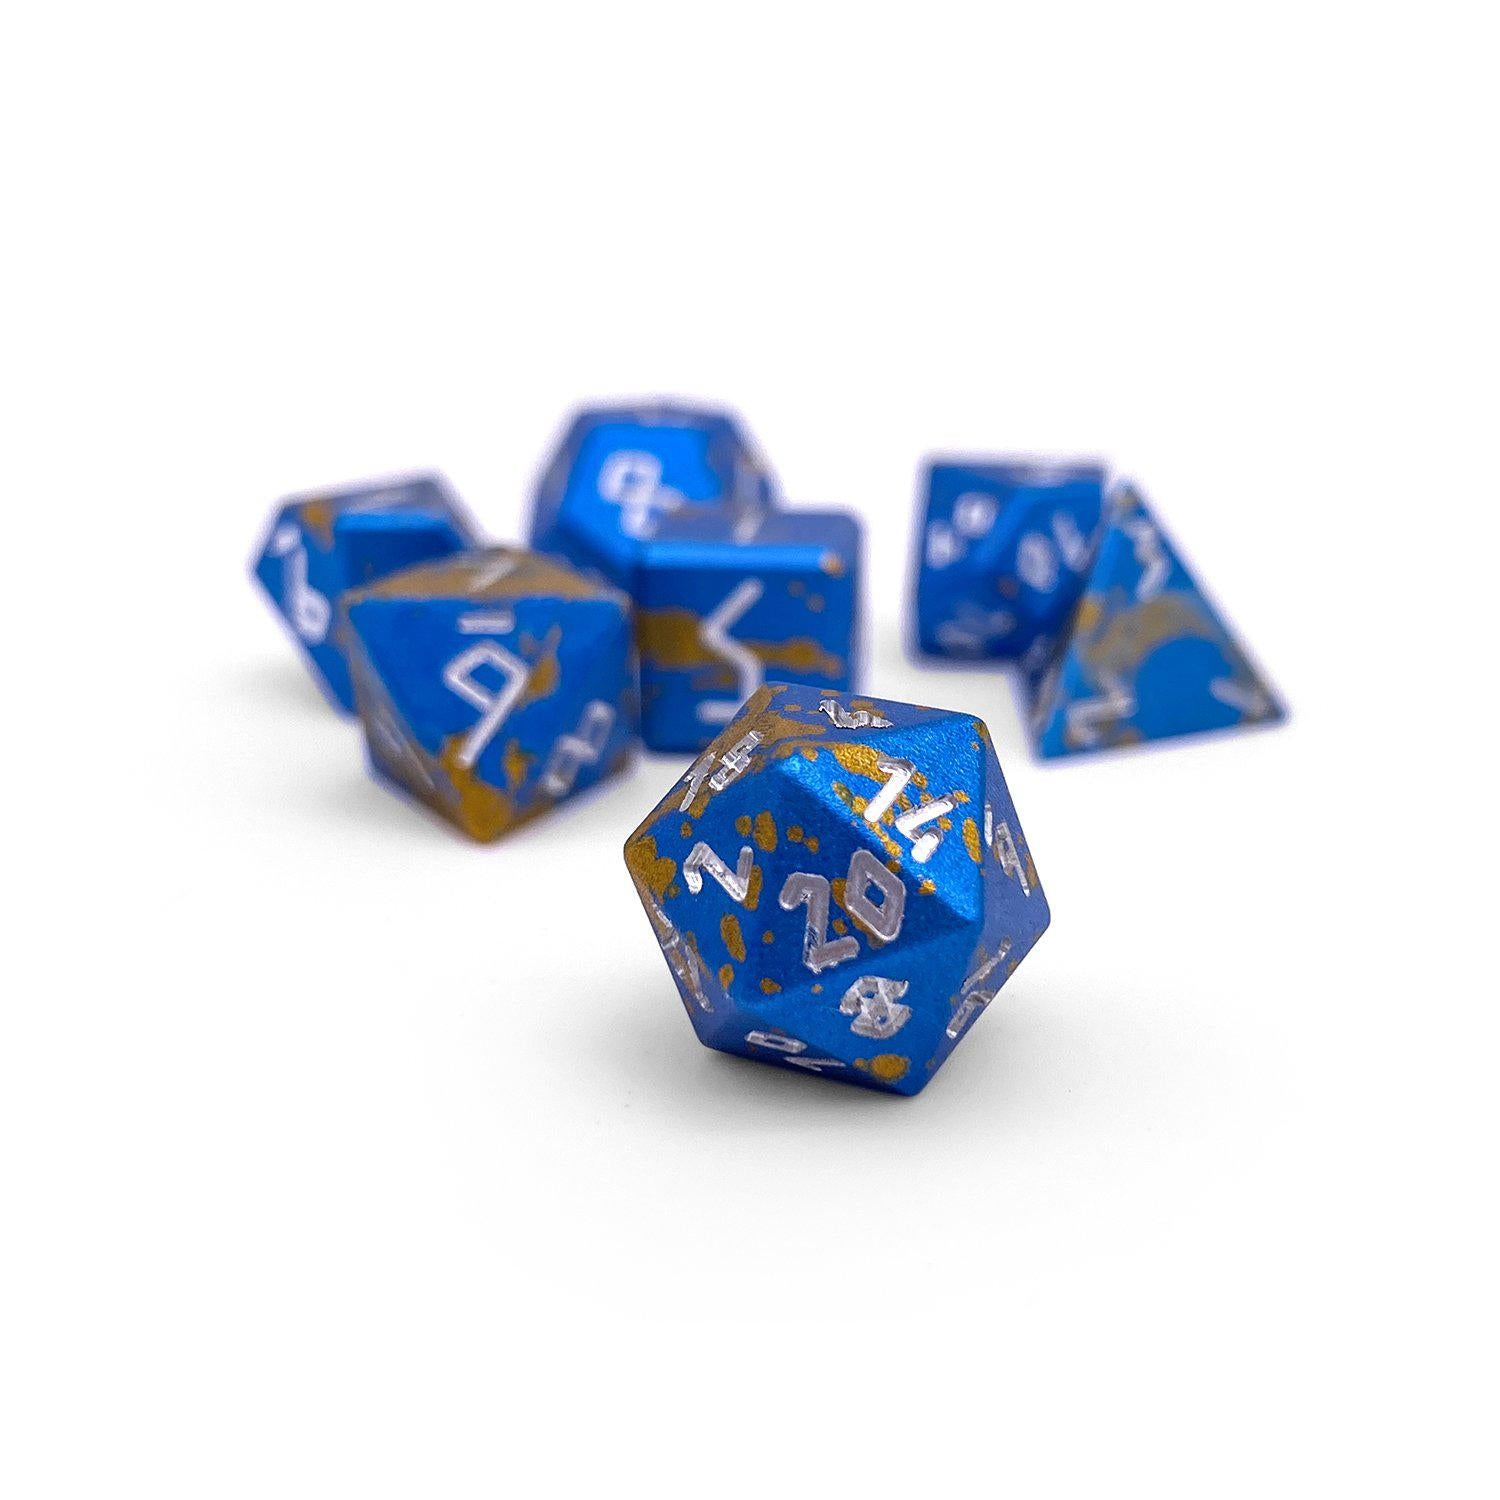 Mimic Wondrous Pebble ™ Dice - 10mm 6063 Aircraft Grade Aluminum Mini